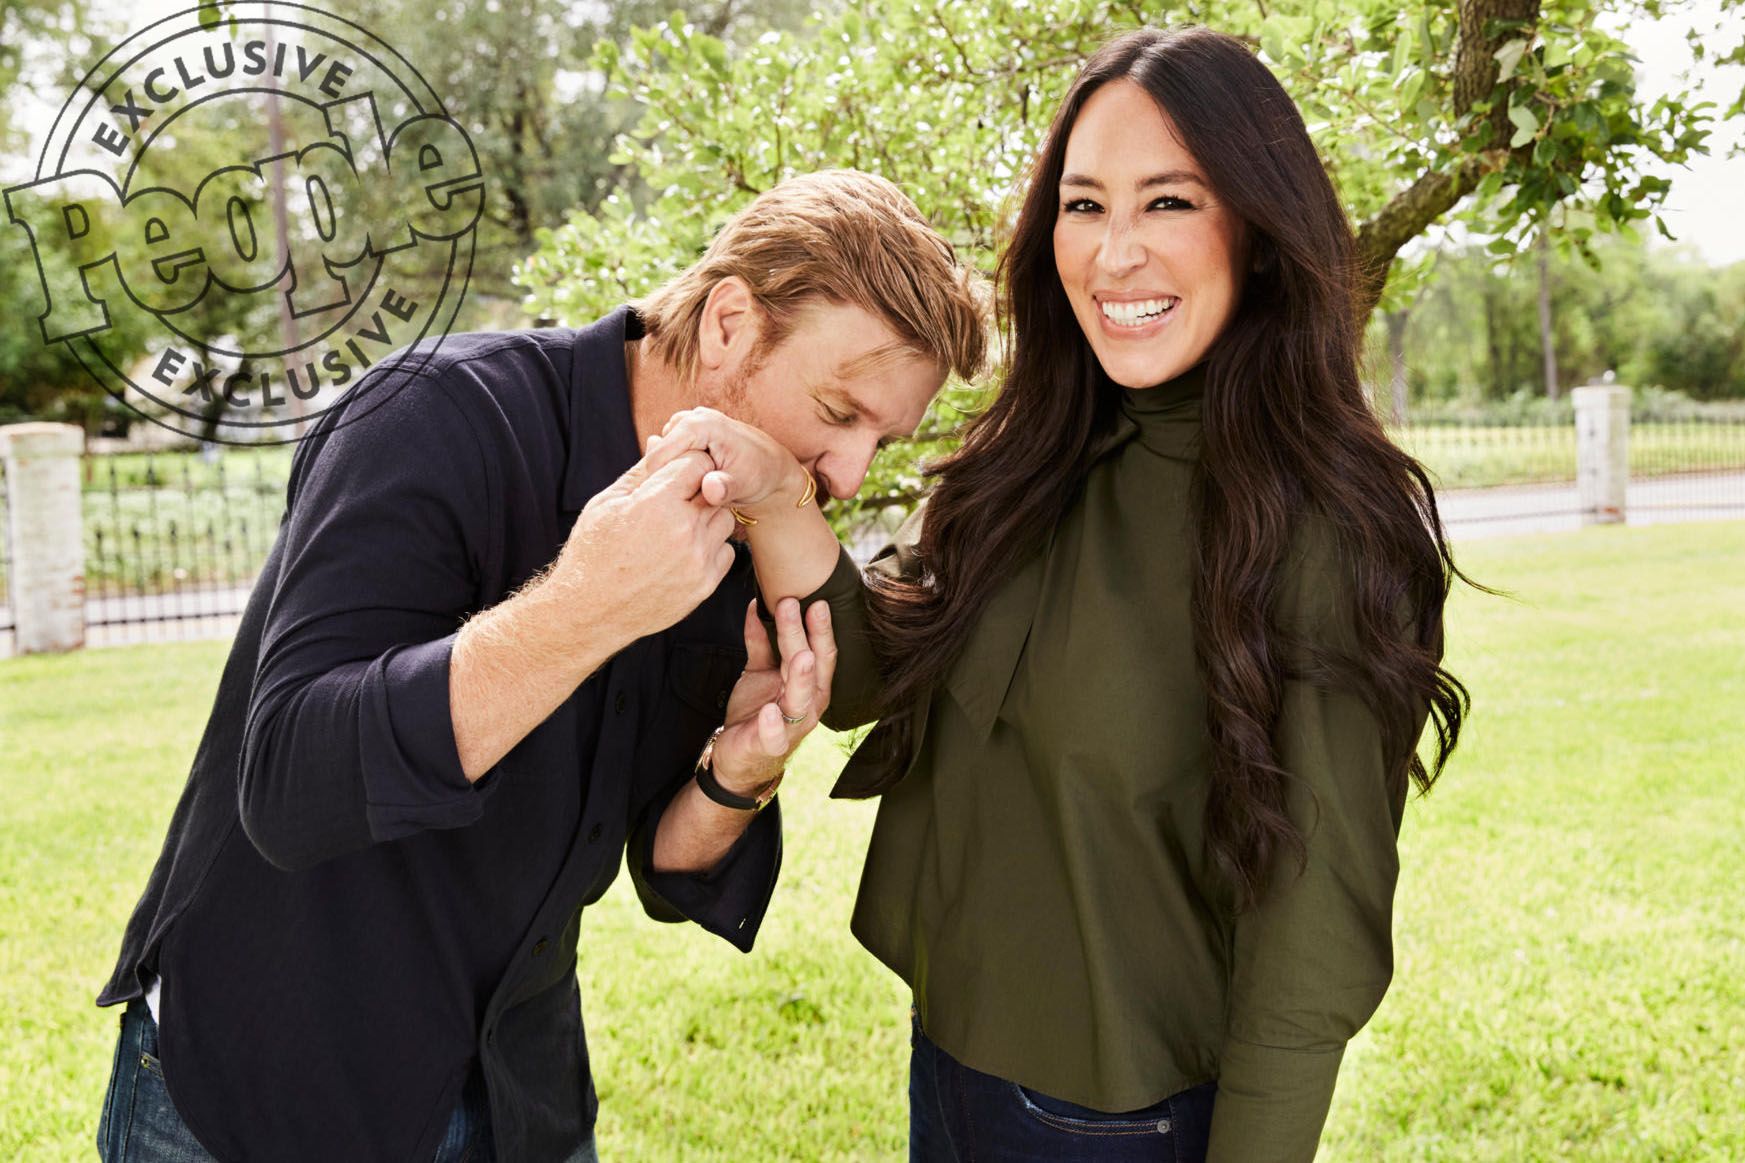 Chip Gaines Kiss Hand Joanna Gaines